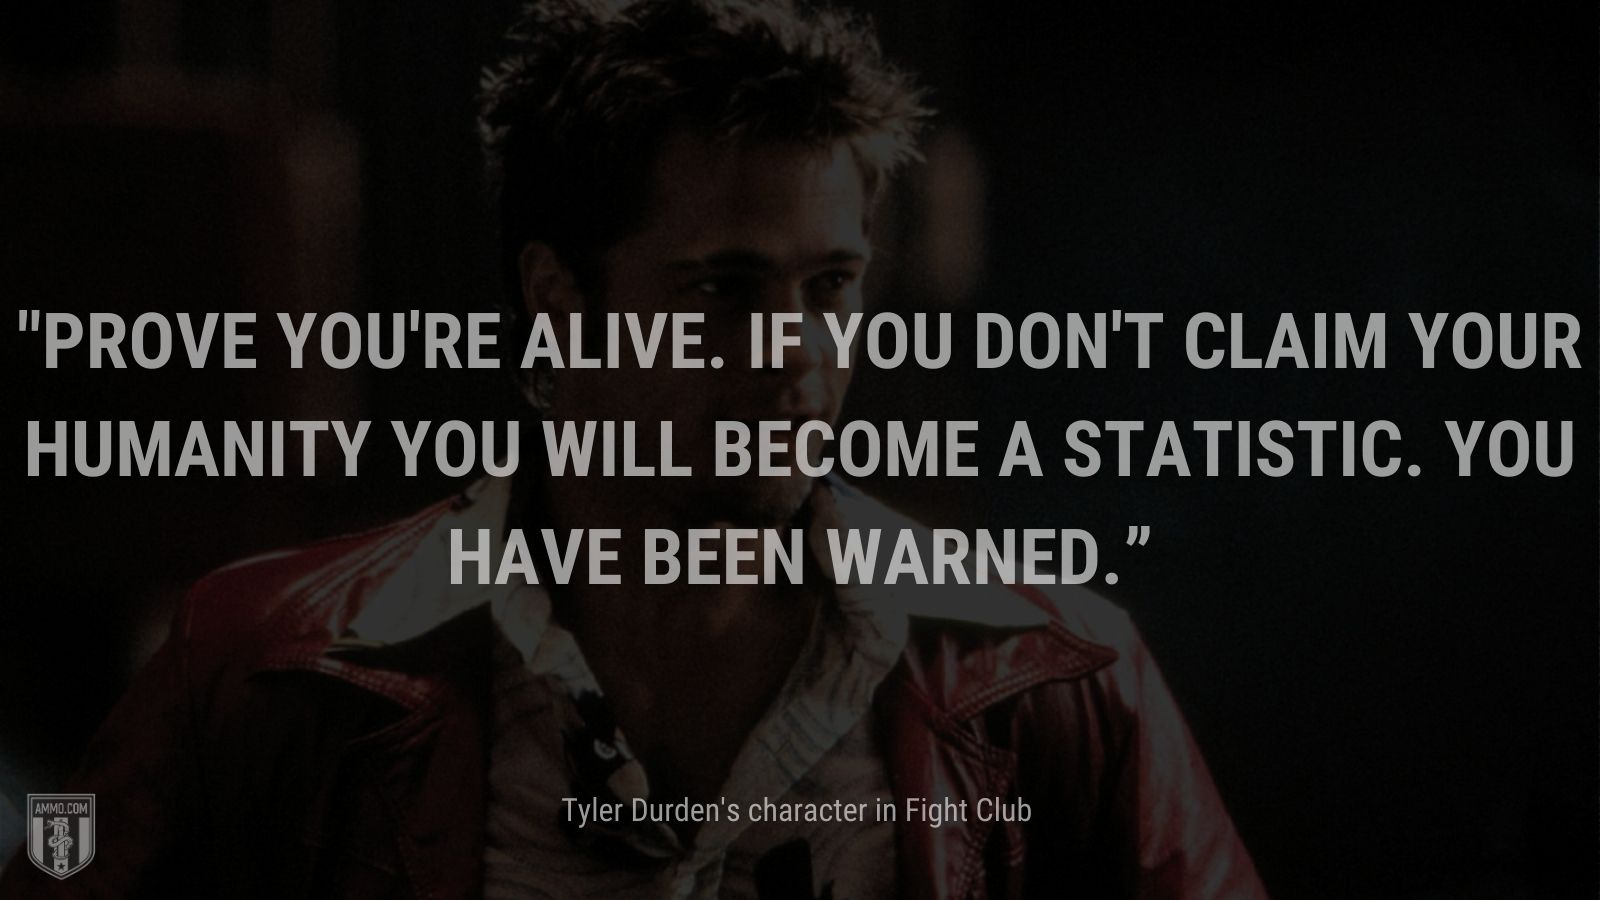 """""""Prove you're alive. If you don't claim your humanity you will become a statistic. You have been warned."""" - Tyler Durden's character Fight Club"""